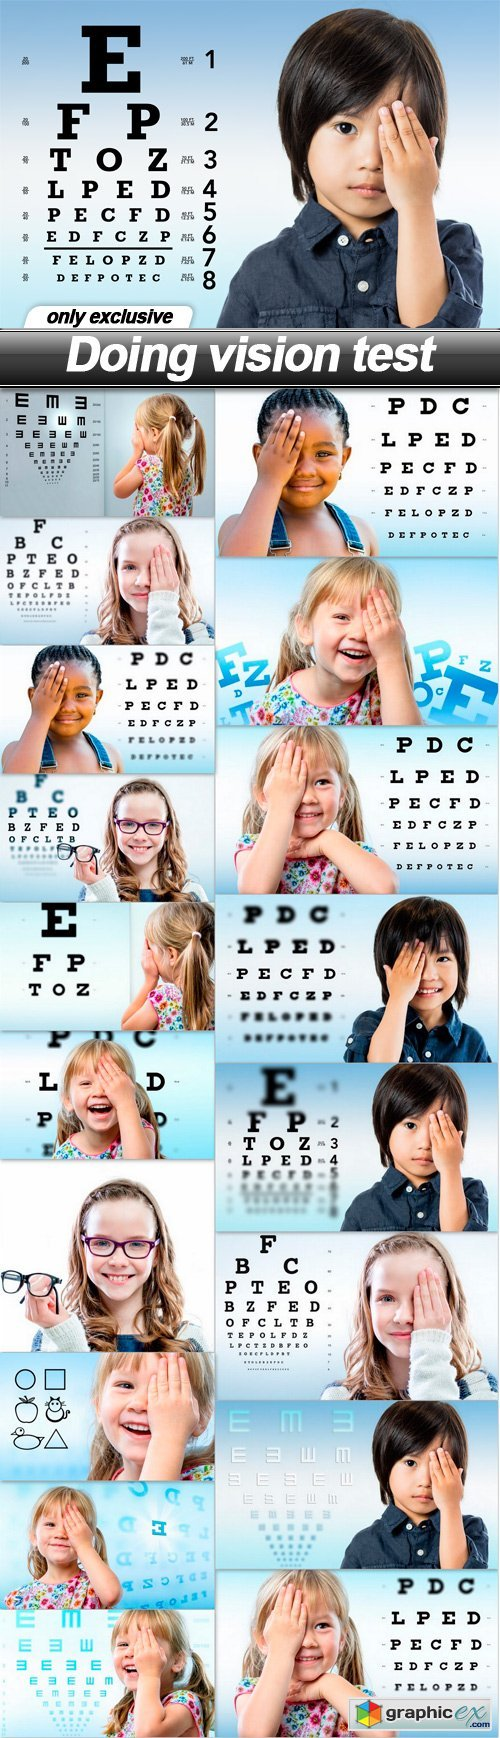 Doing vision test - 19 UHQ JPEG